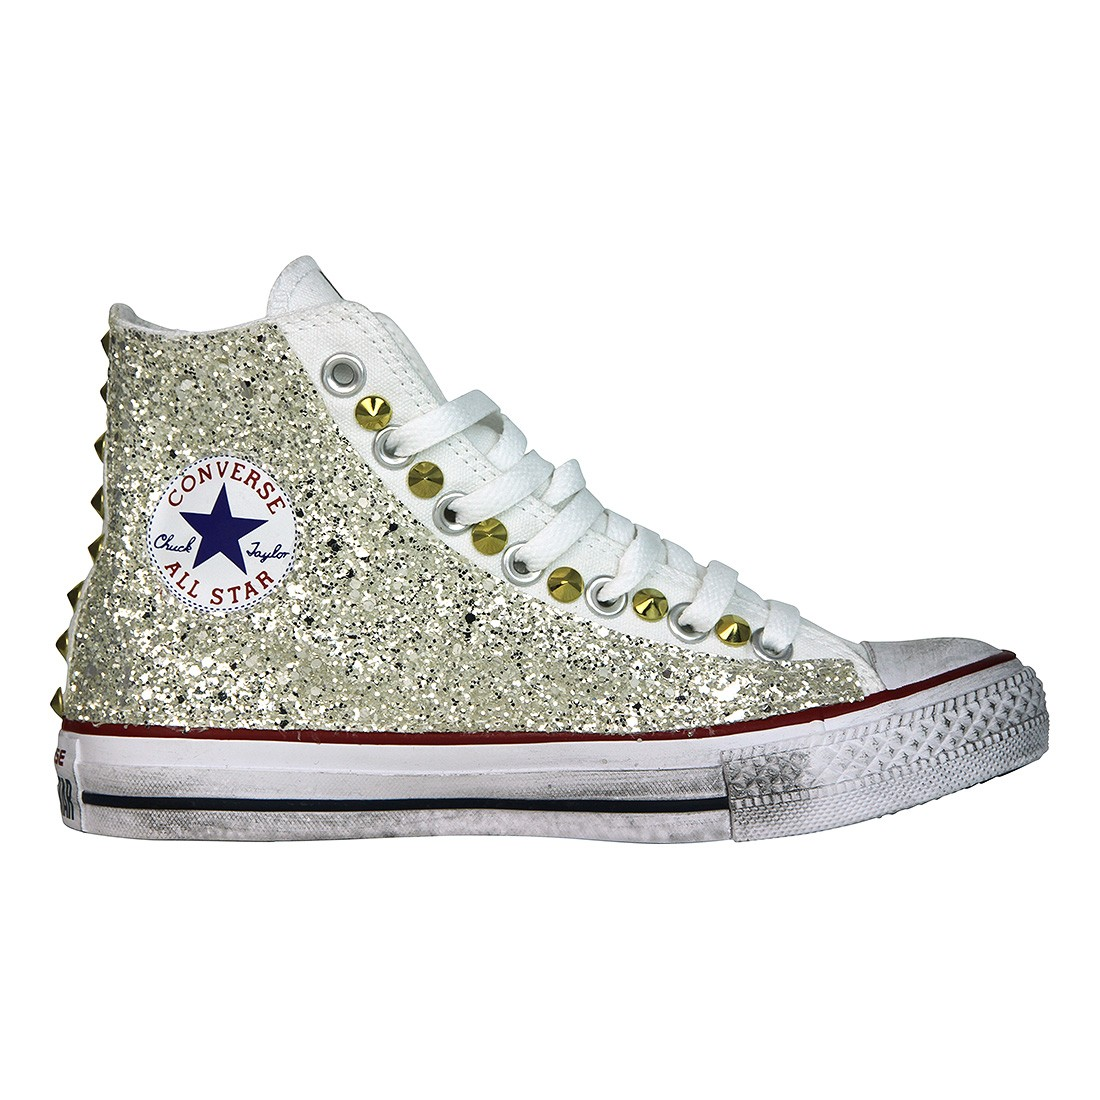 converse all star alte nere bambina